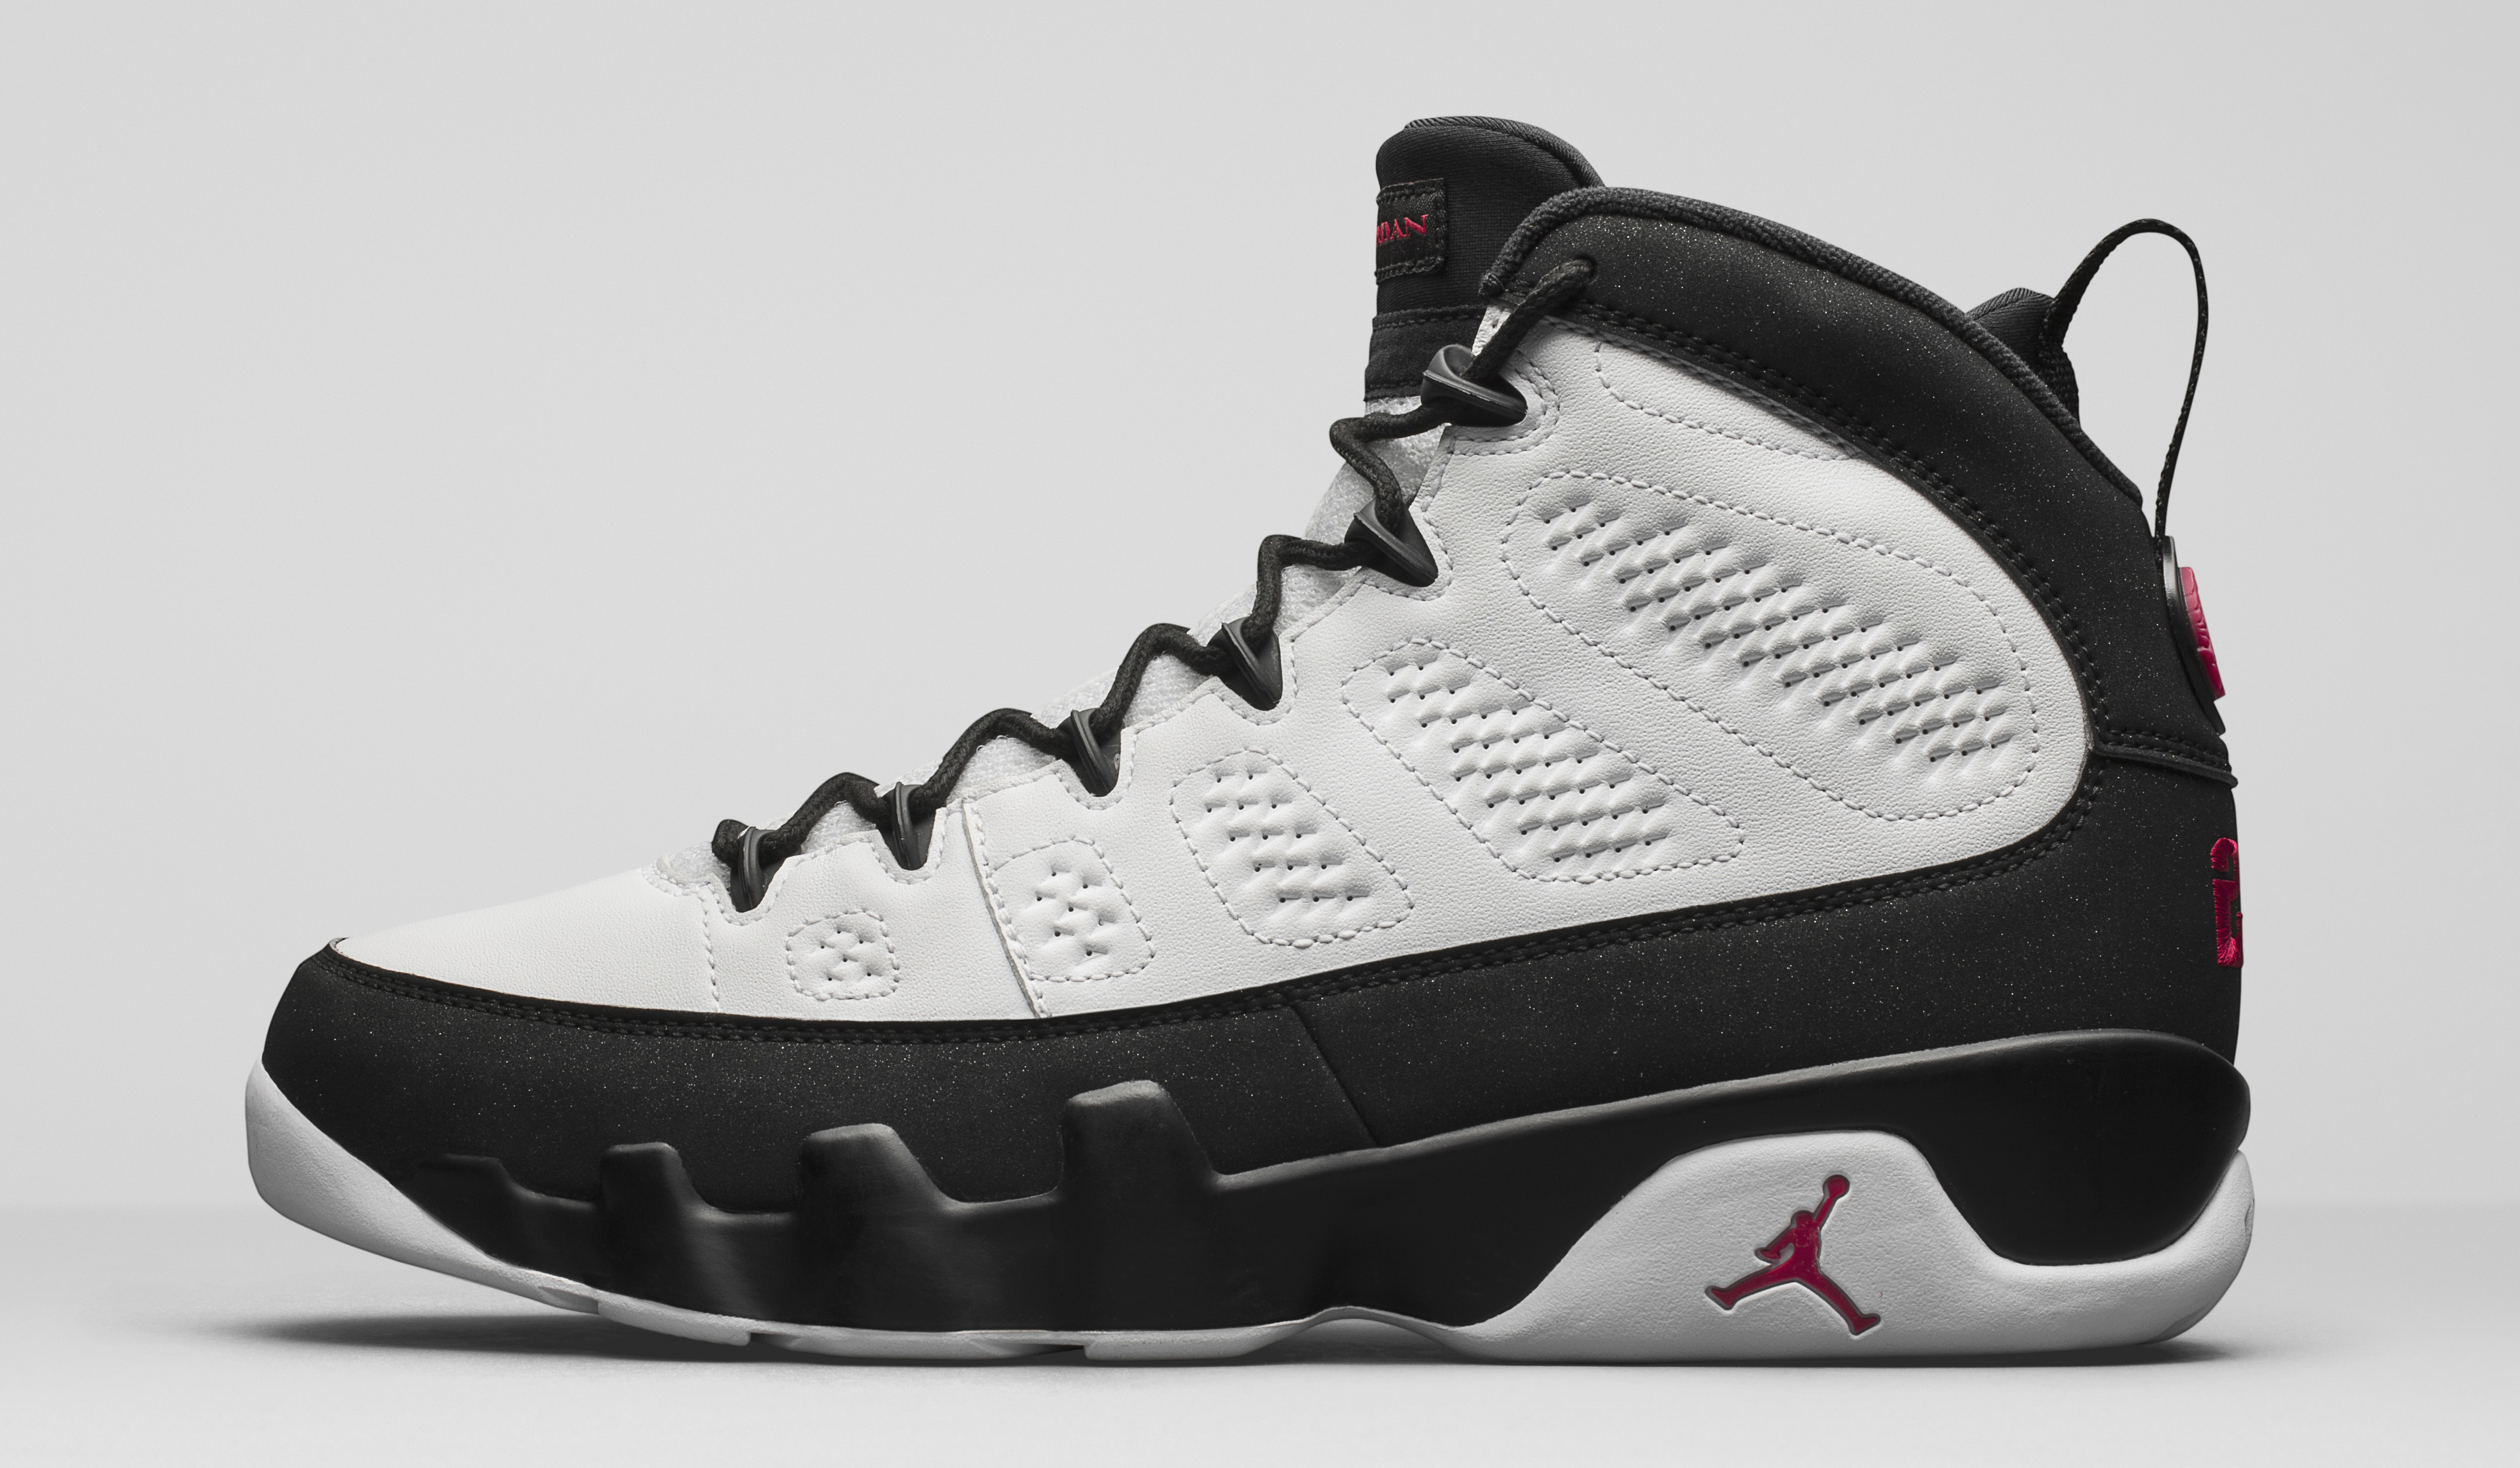 separation shoes d3715 df8a9 Space Jam Air Jordan 9 302370-112 Profile